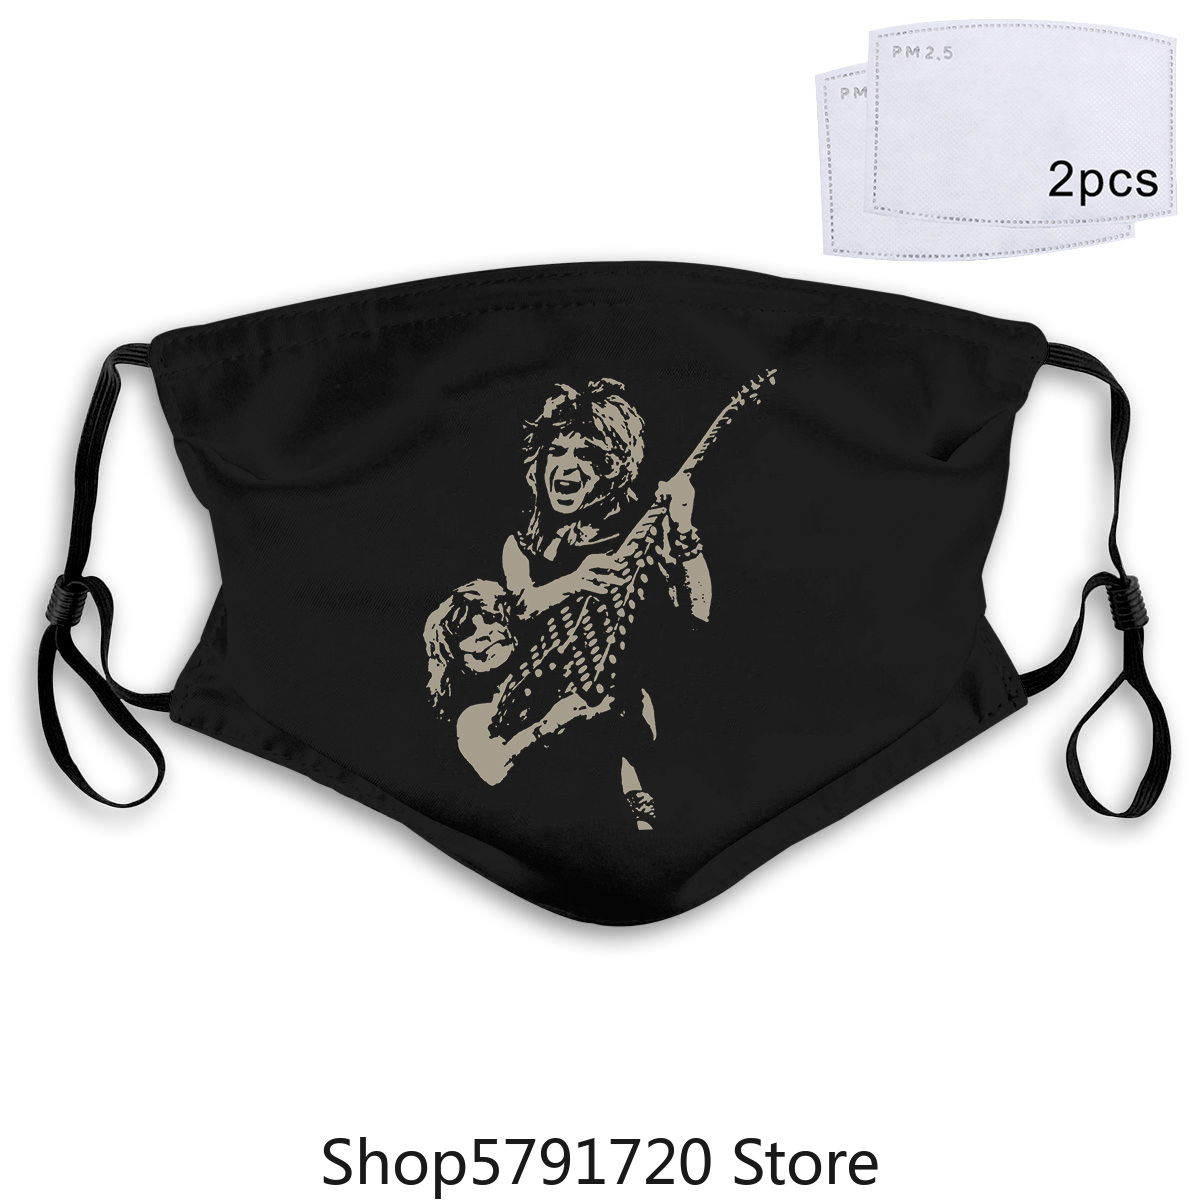 Ozzy Osbourne <font><b>Randy</b></font> <font><b>Rhoads</b></font> Tribute Black T Mask 2012 Mens L image